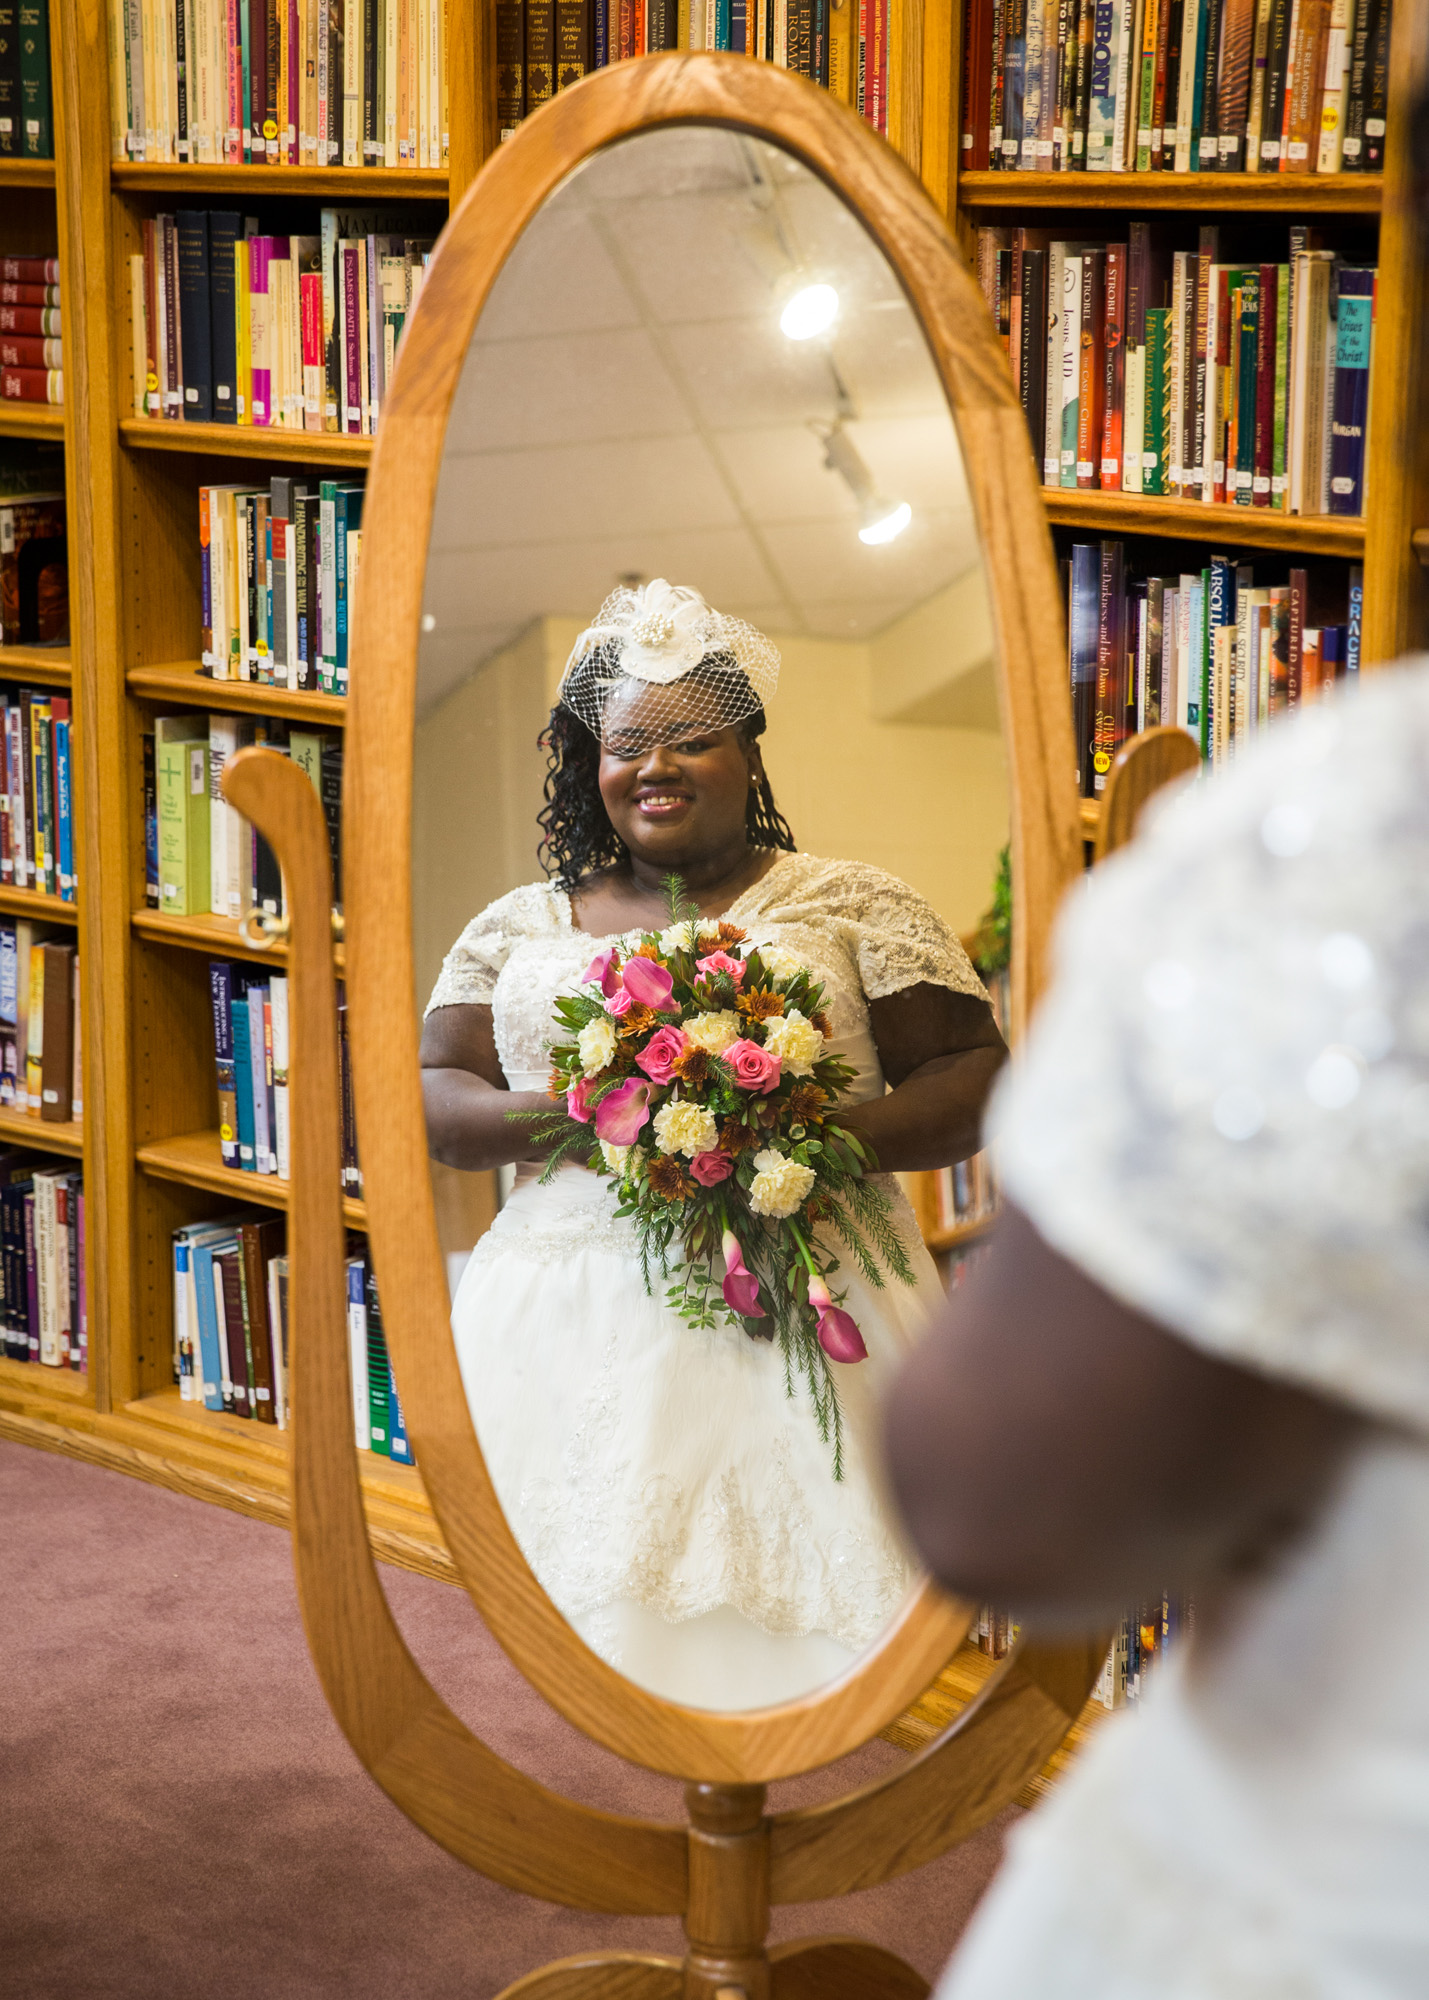 Bride with birdcage veil in mirror